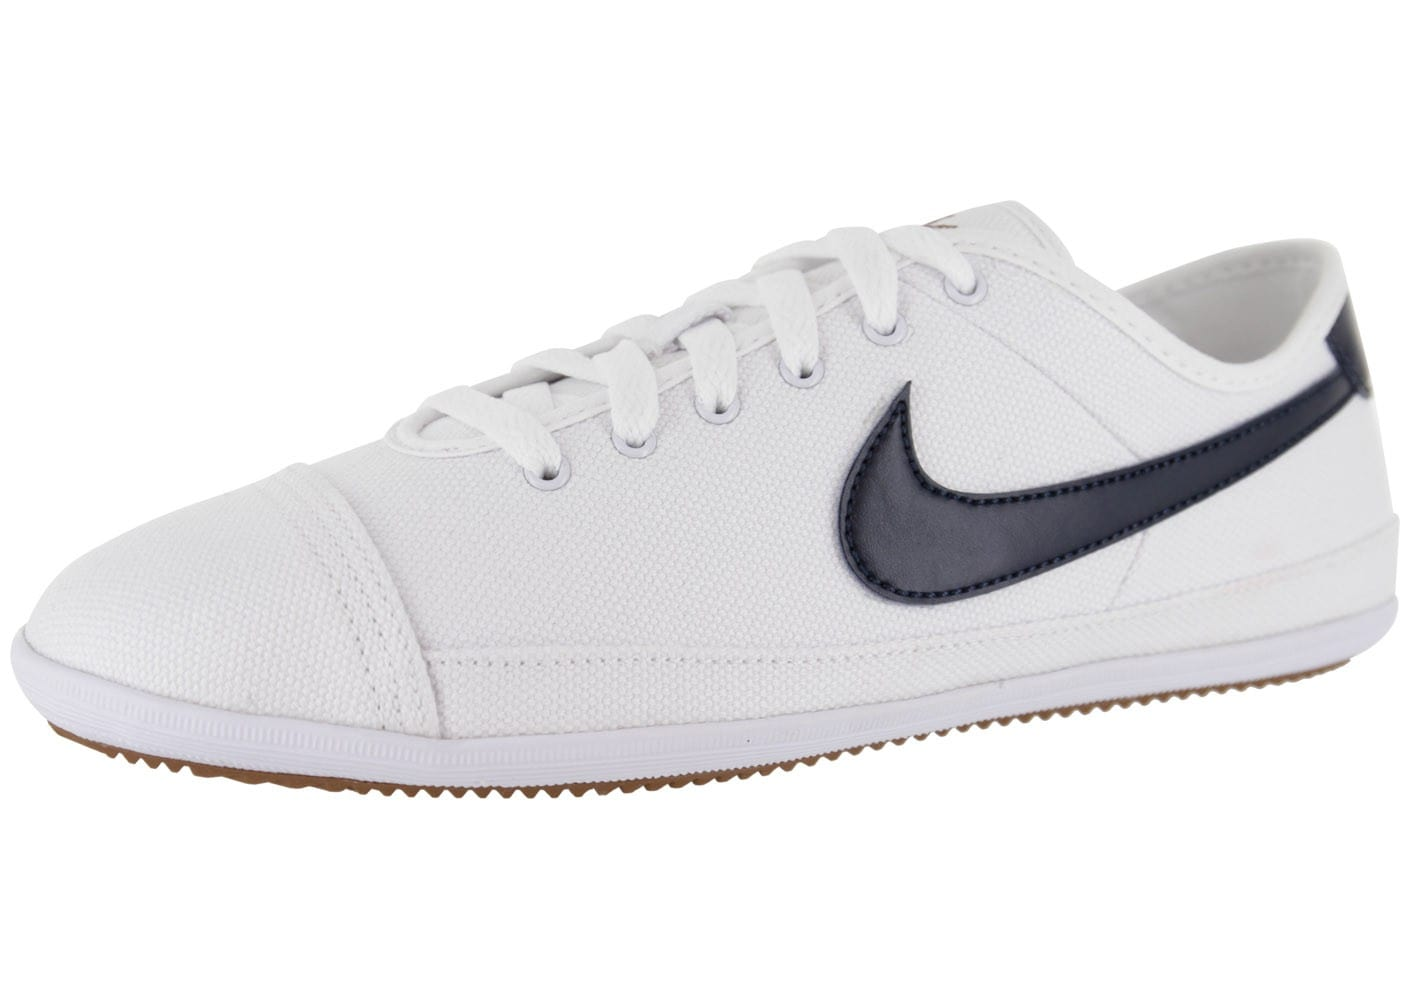 Nike Flash Toile Blanche - Chaussures Baskets homme - Chausport